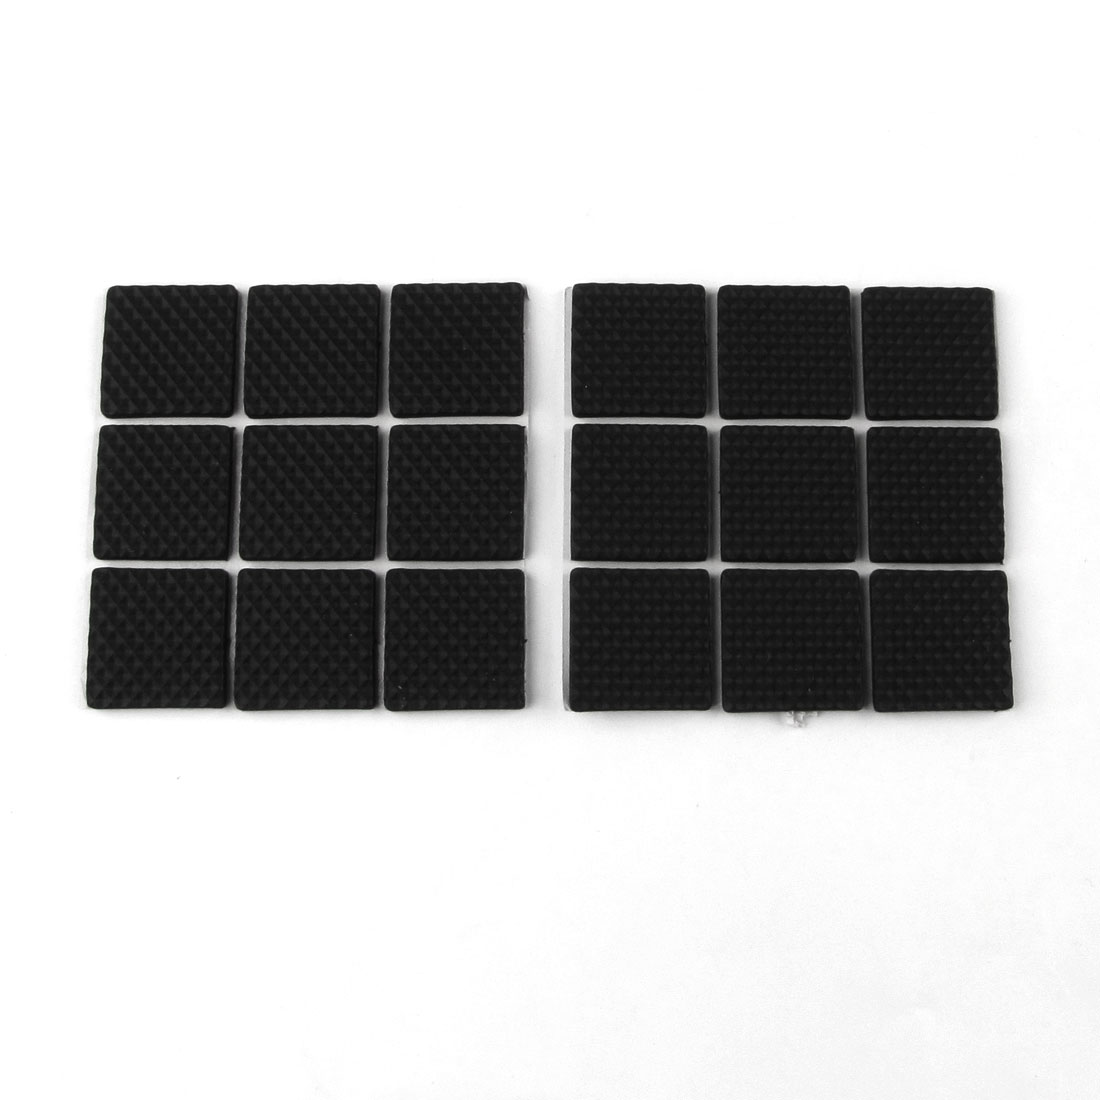 18 Pcs Self Adhesive Black Square Foam Table Chair Leg Mat Pad Protector